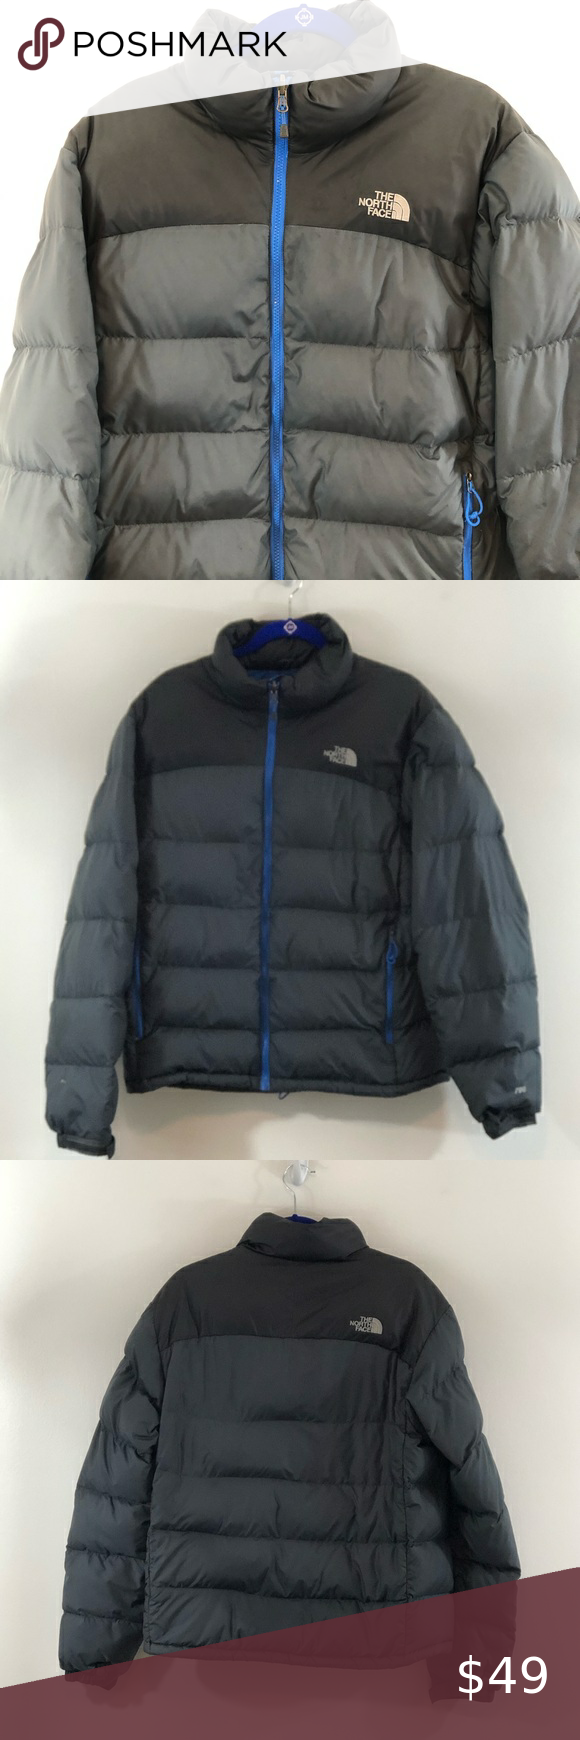 The North Face 700 Men S Down Puffer Jacket Sz M North Face 700 The North Face Jackets [ 1740 x 580 Pixel ]